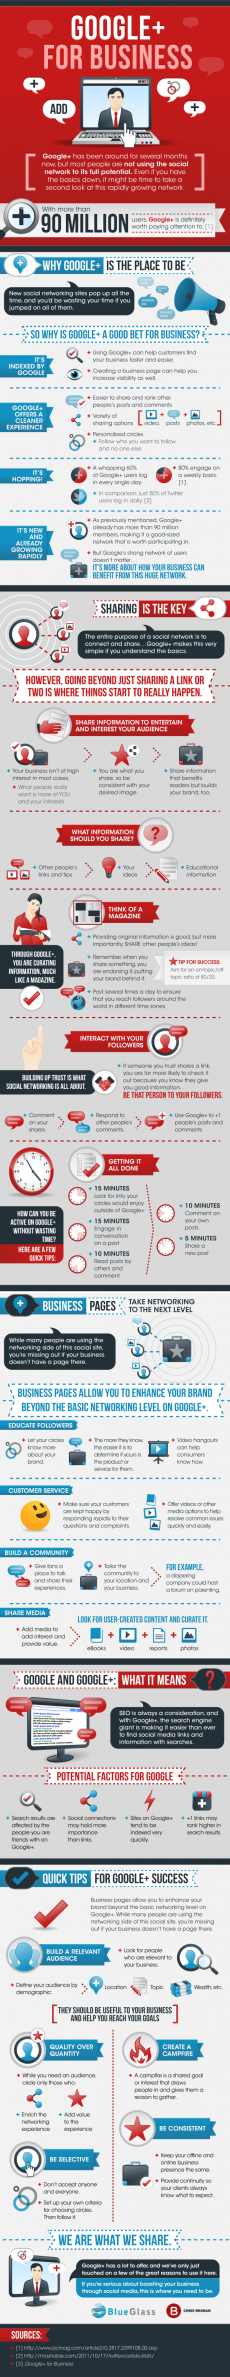 Google+ for Business. What It can do for yours. An infographic. - The Web